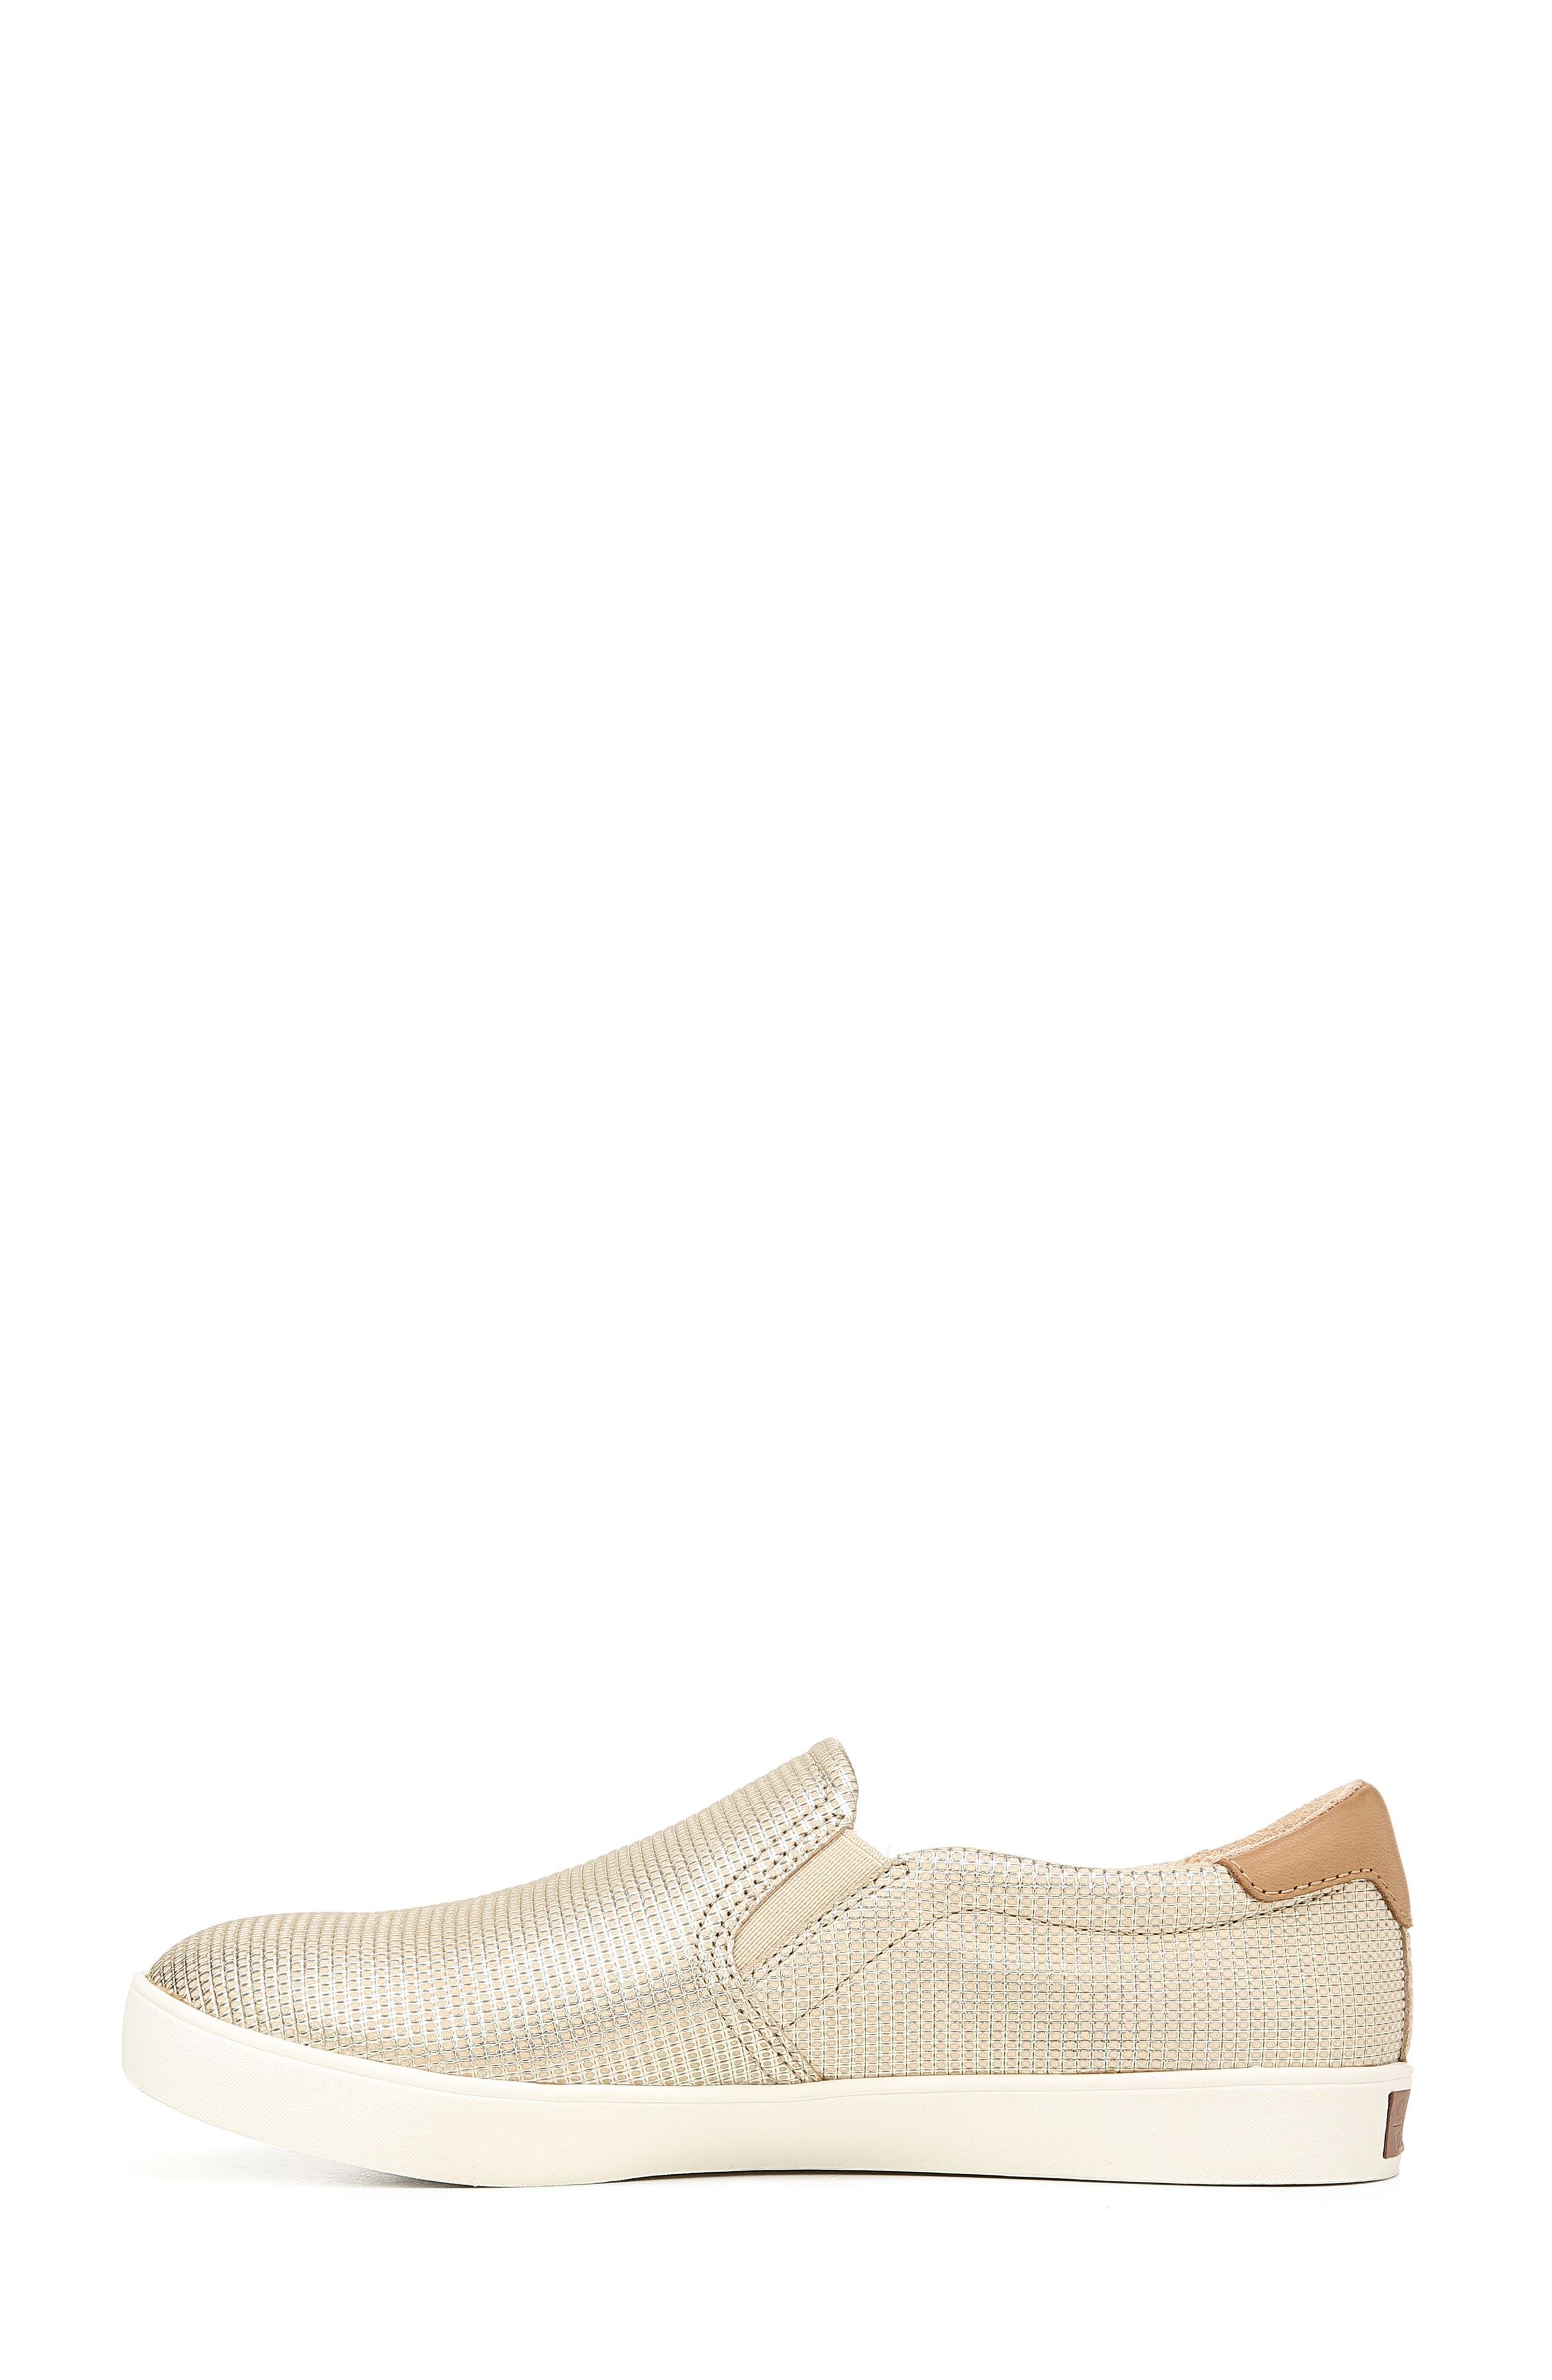 ,                             Original Collection 'Scout' Slip On Sneaker,                             Alternate thumbnail 8, color,                             BEIGE LEATHER